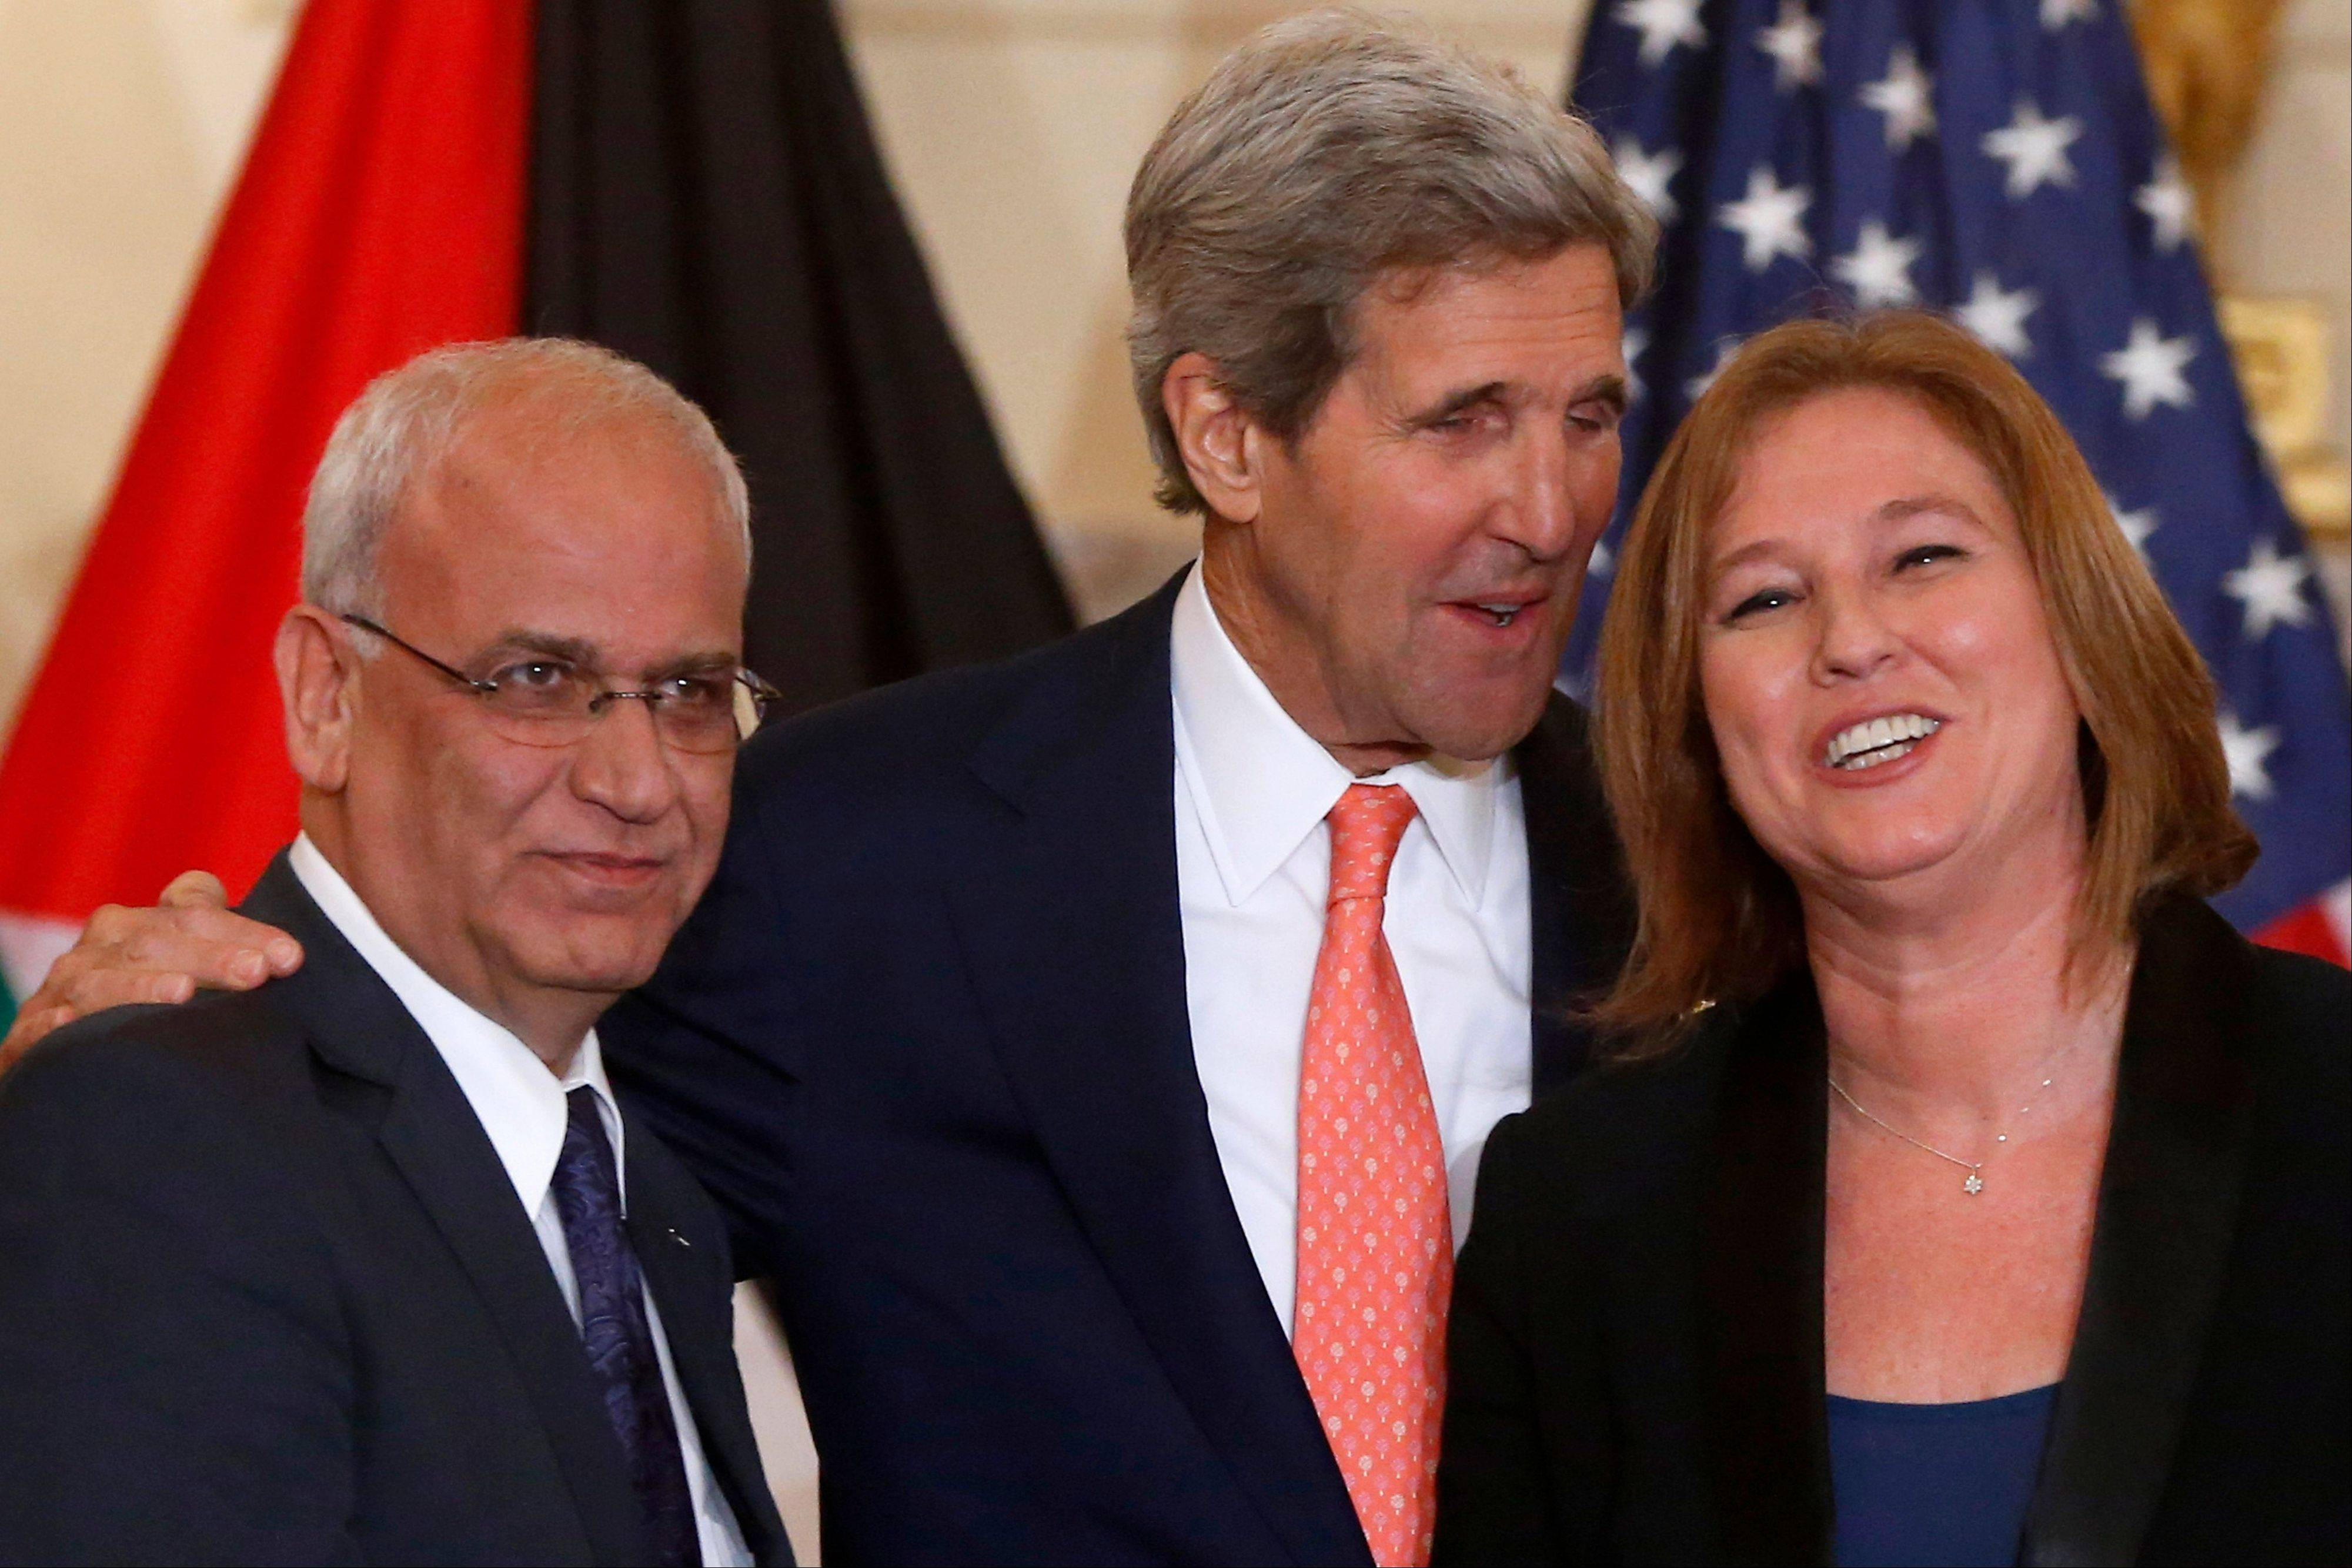 Secretary of State John Kerry stands with Israel's Justice Minister and chief negotiator Tzipi Livni, right, and Palestinian chief negotiator, Saeb Erekat, after they made statements on the resumption of Israeli-Palestinian peace talks Tuesday at the State Department in Washington.